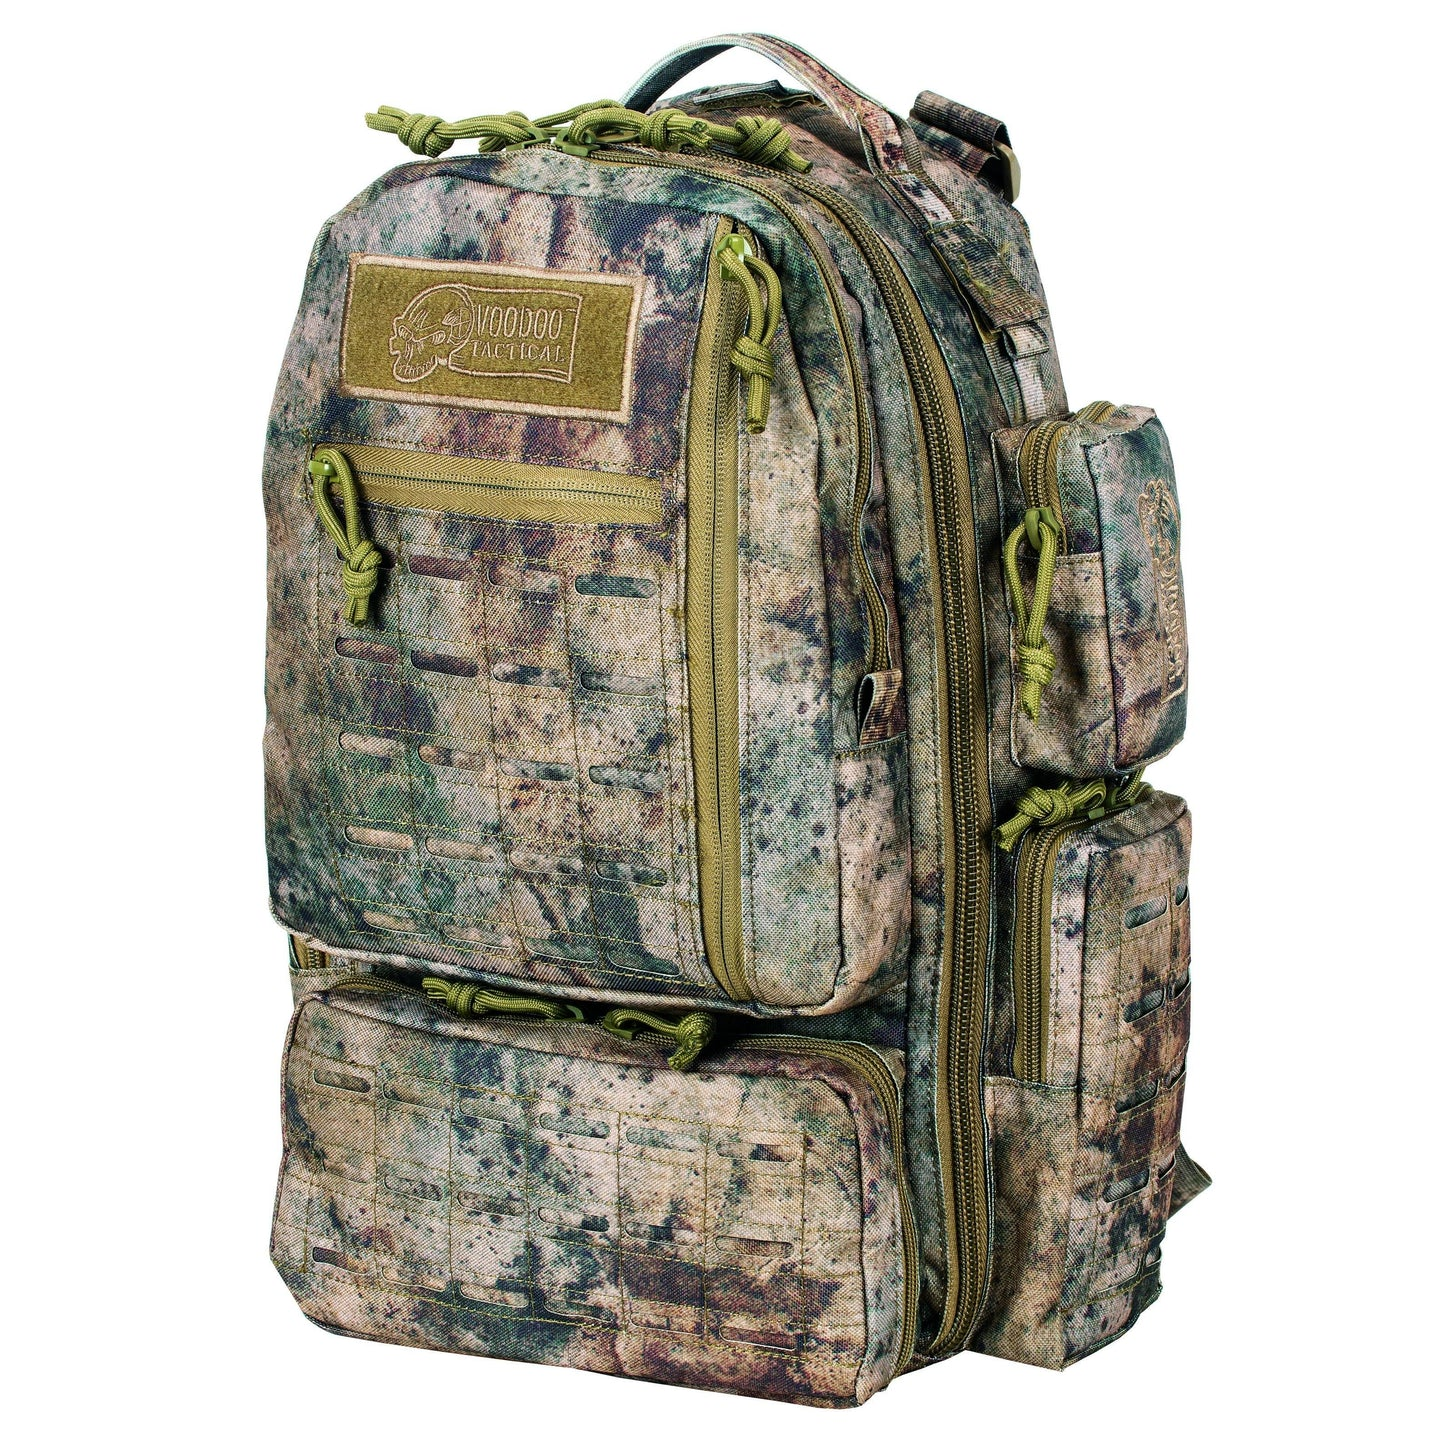 VOODOO MINI TOBAGO BACKPACK - Northstar Bags